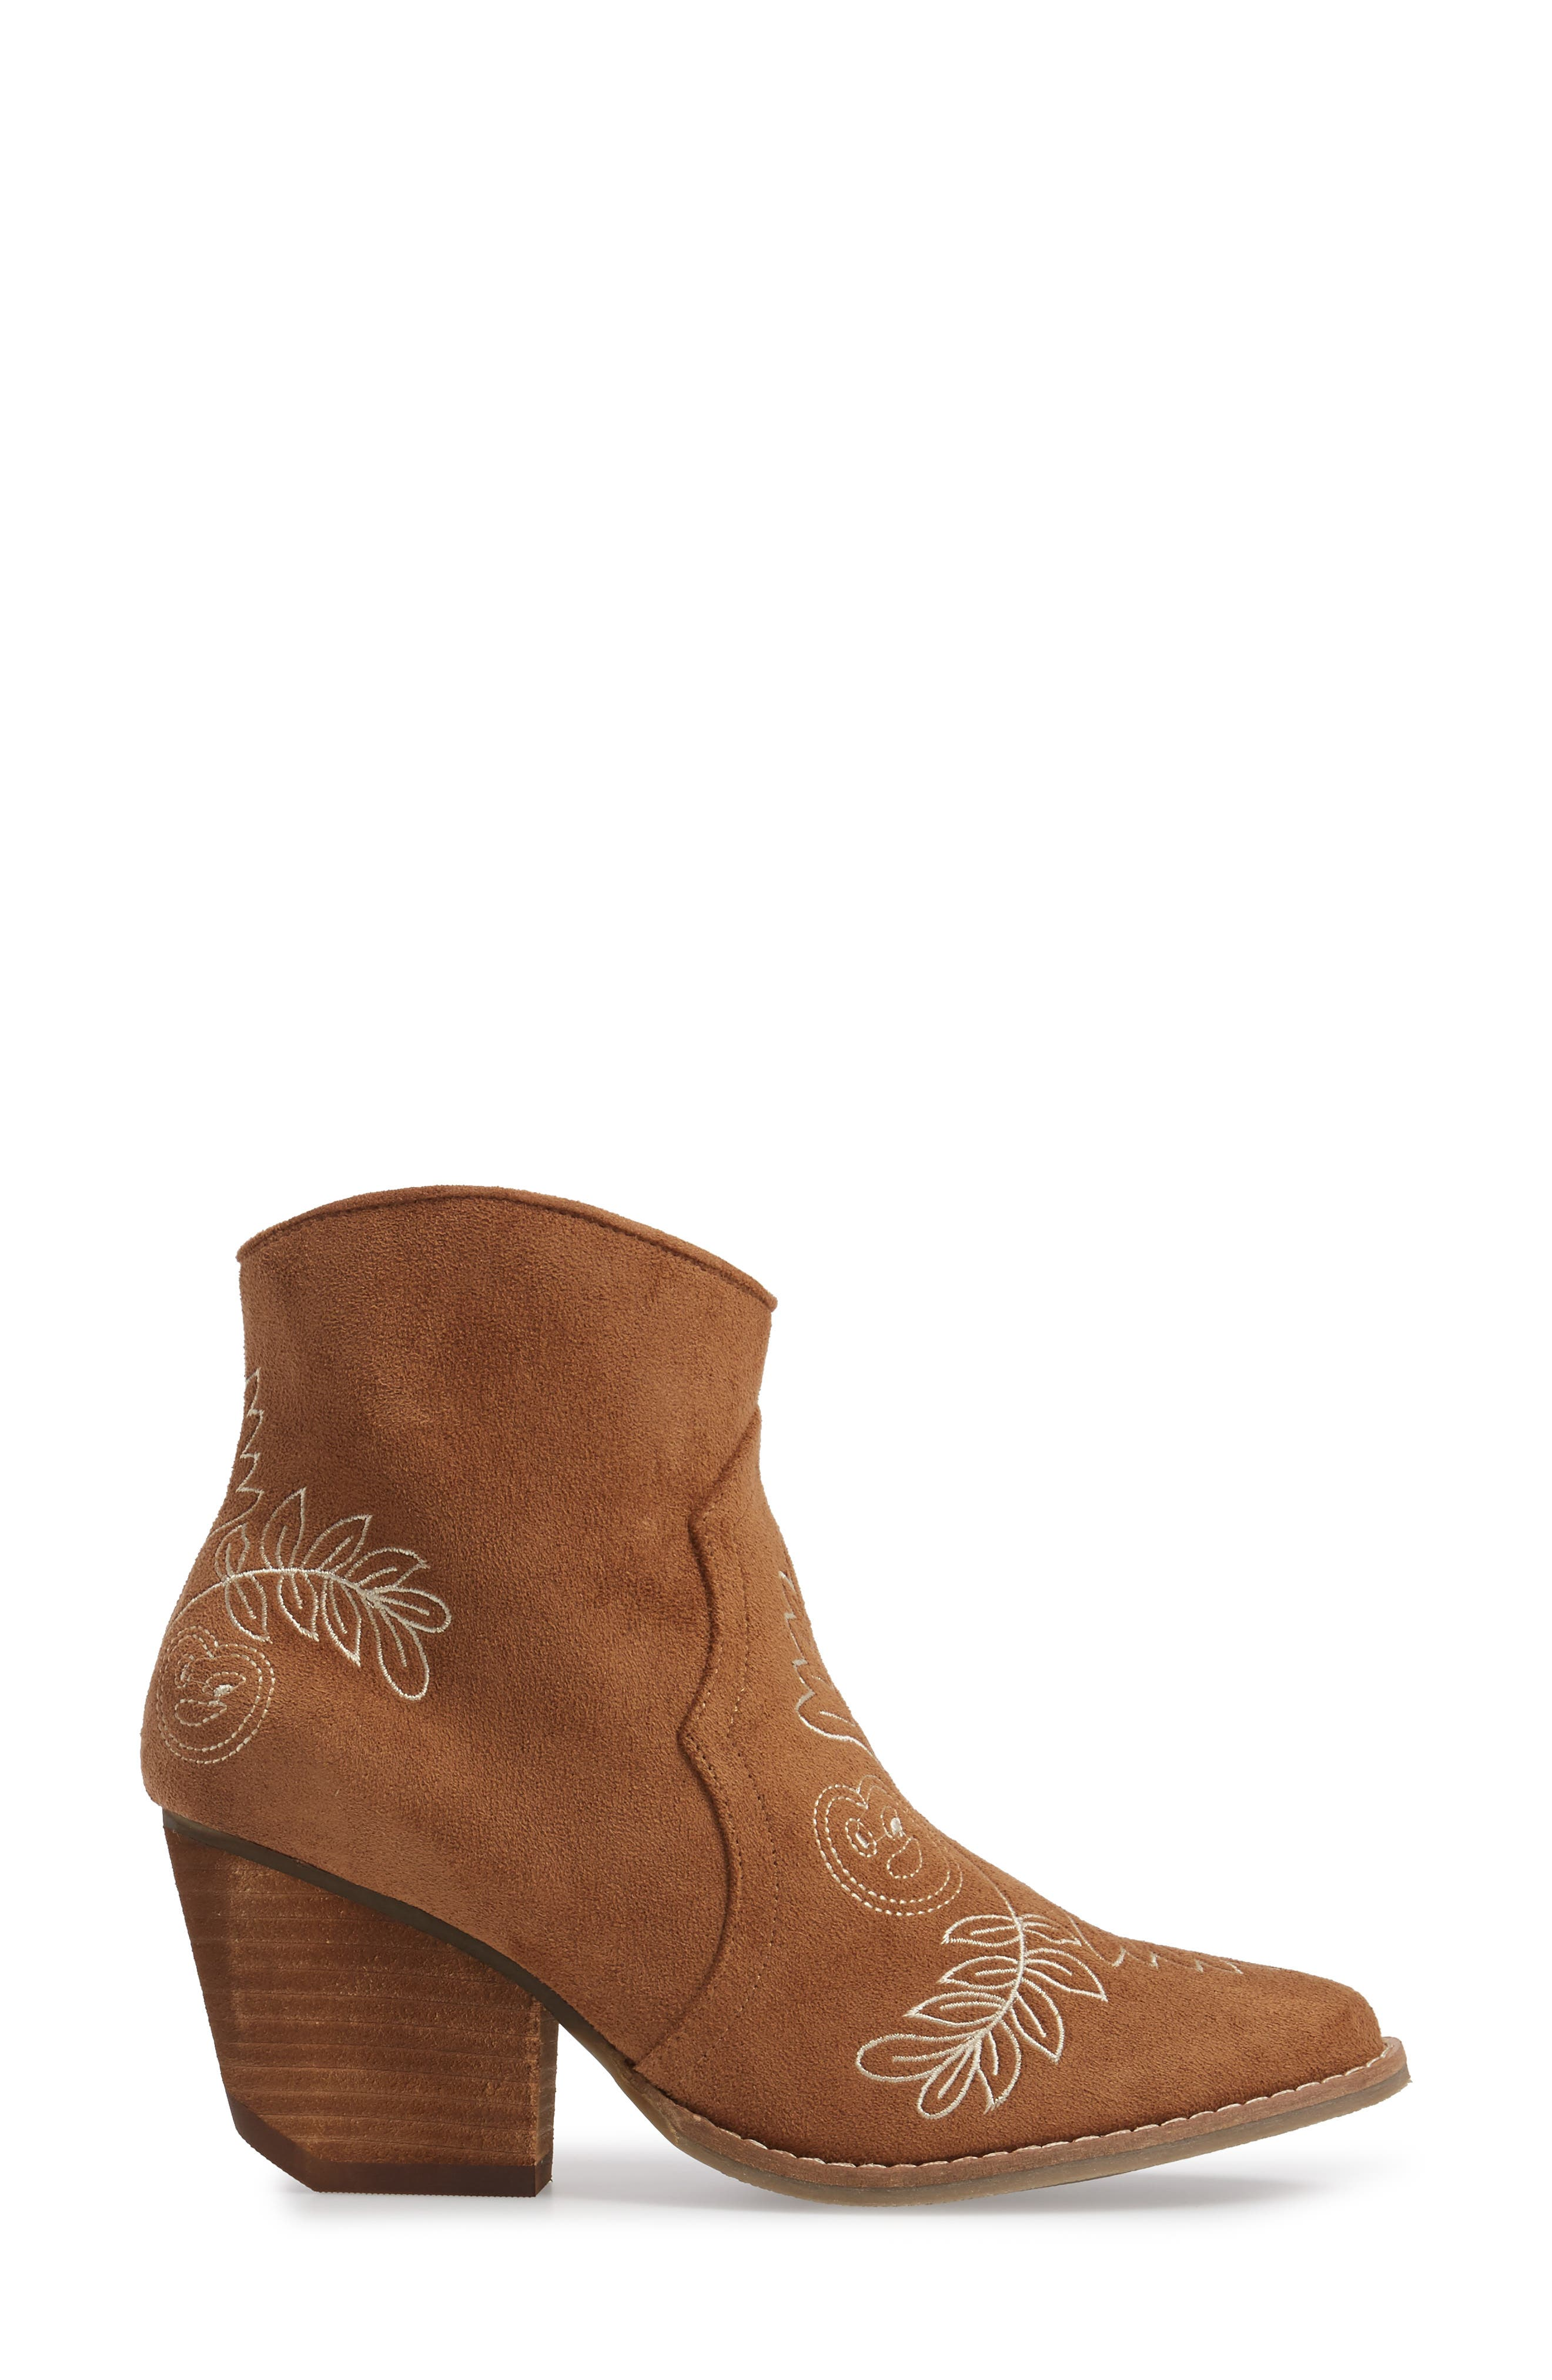 Axis Embroidered Bootie,                             Alternate thumbnail 5, color,